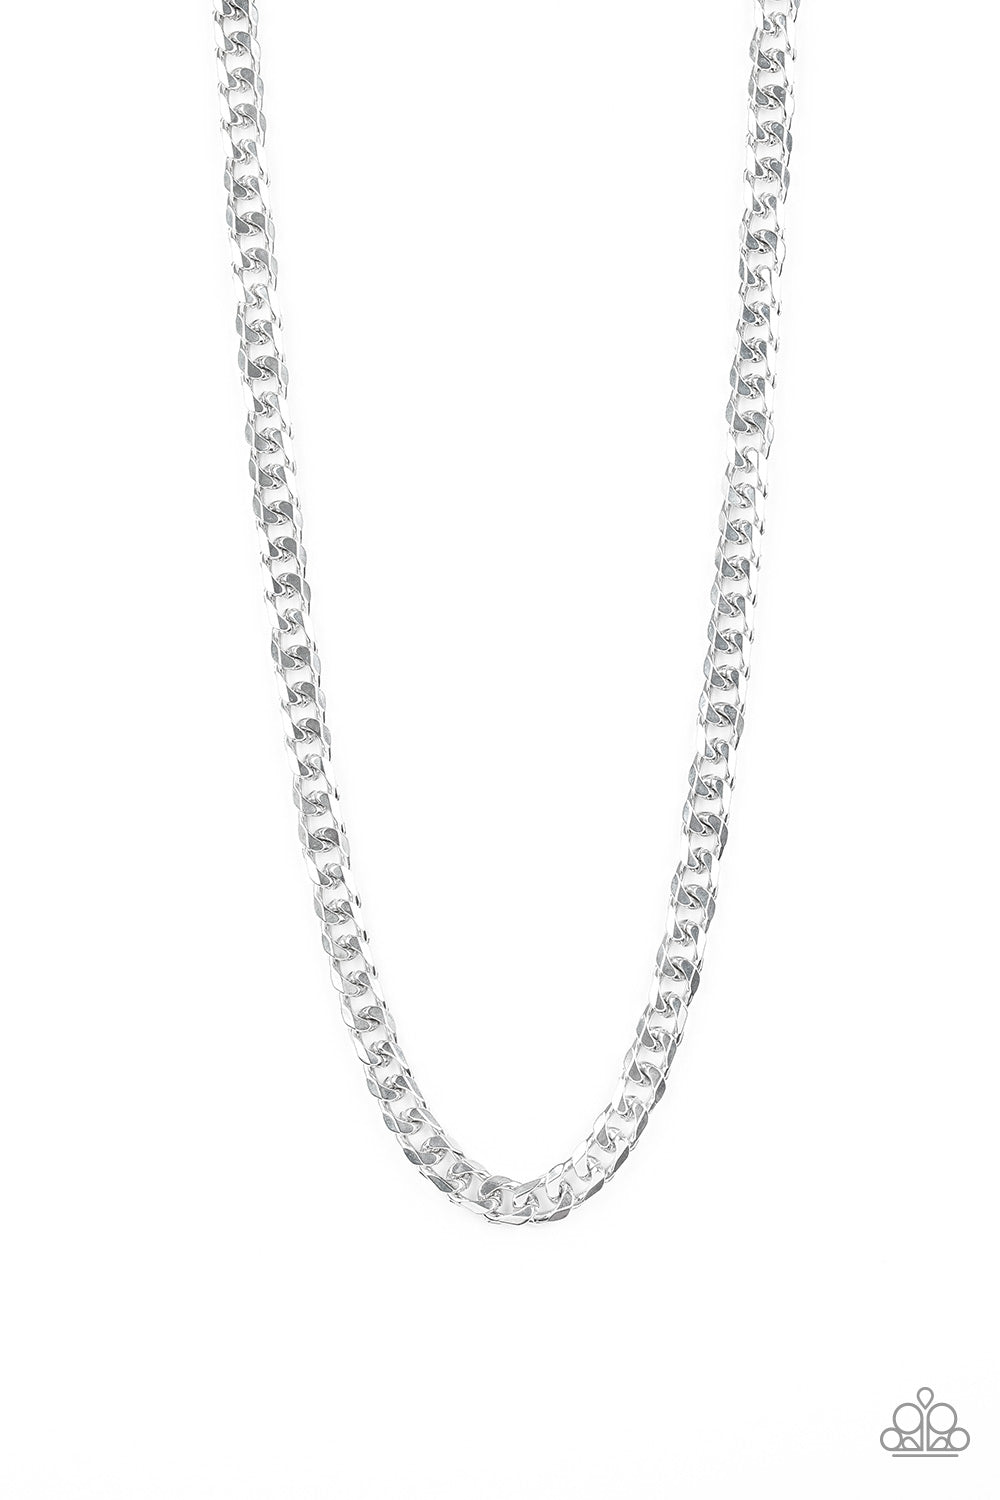 The Game CHAIN-ger Silver Necklace